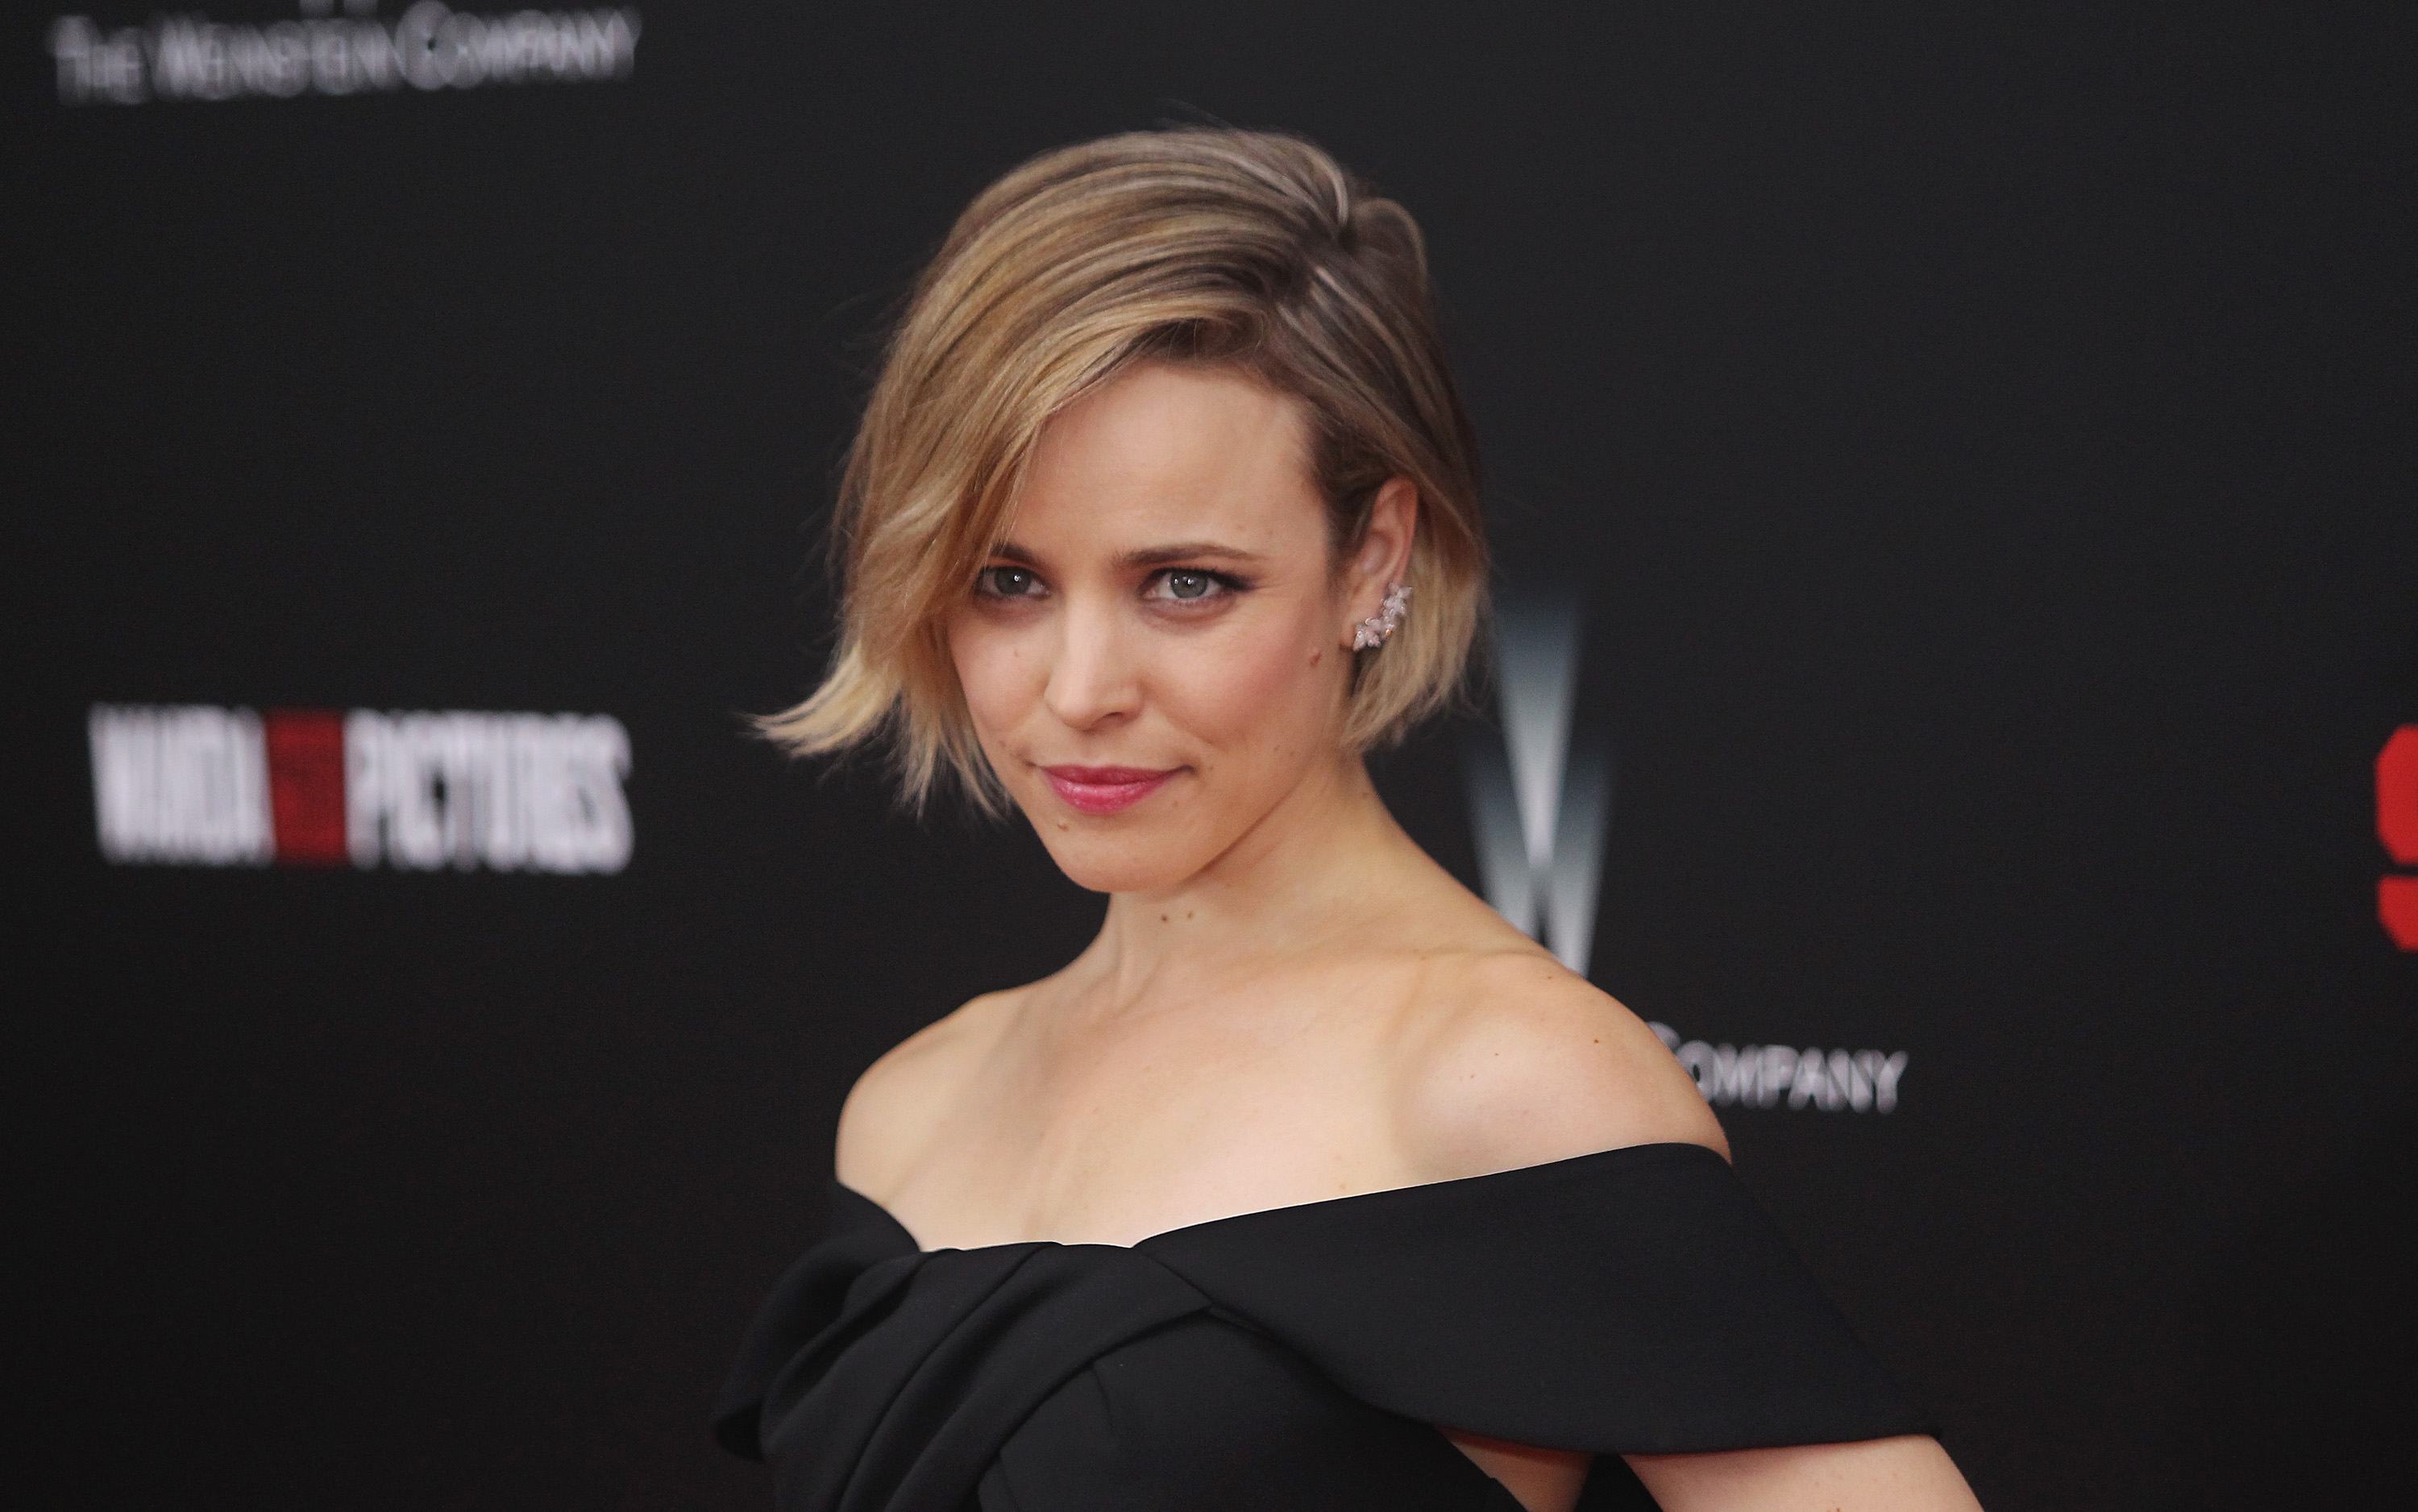 Rachel McAdams attends the  Southpaw  New York premiere at AMC Loews Lincoln Square on July 20, 2015 in New York City.